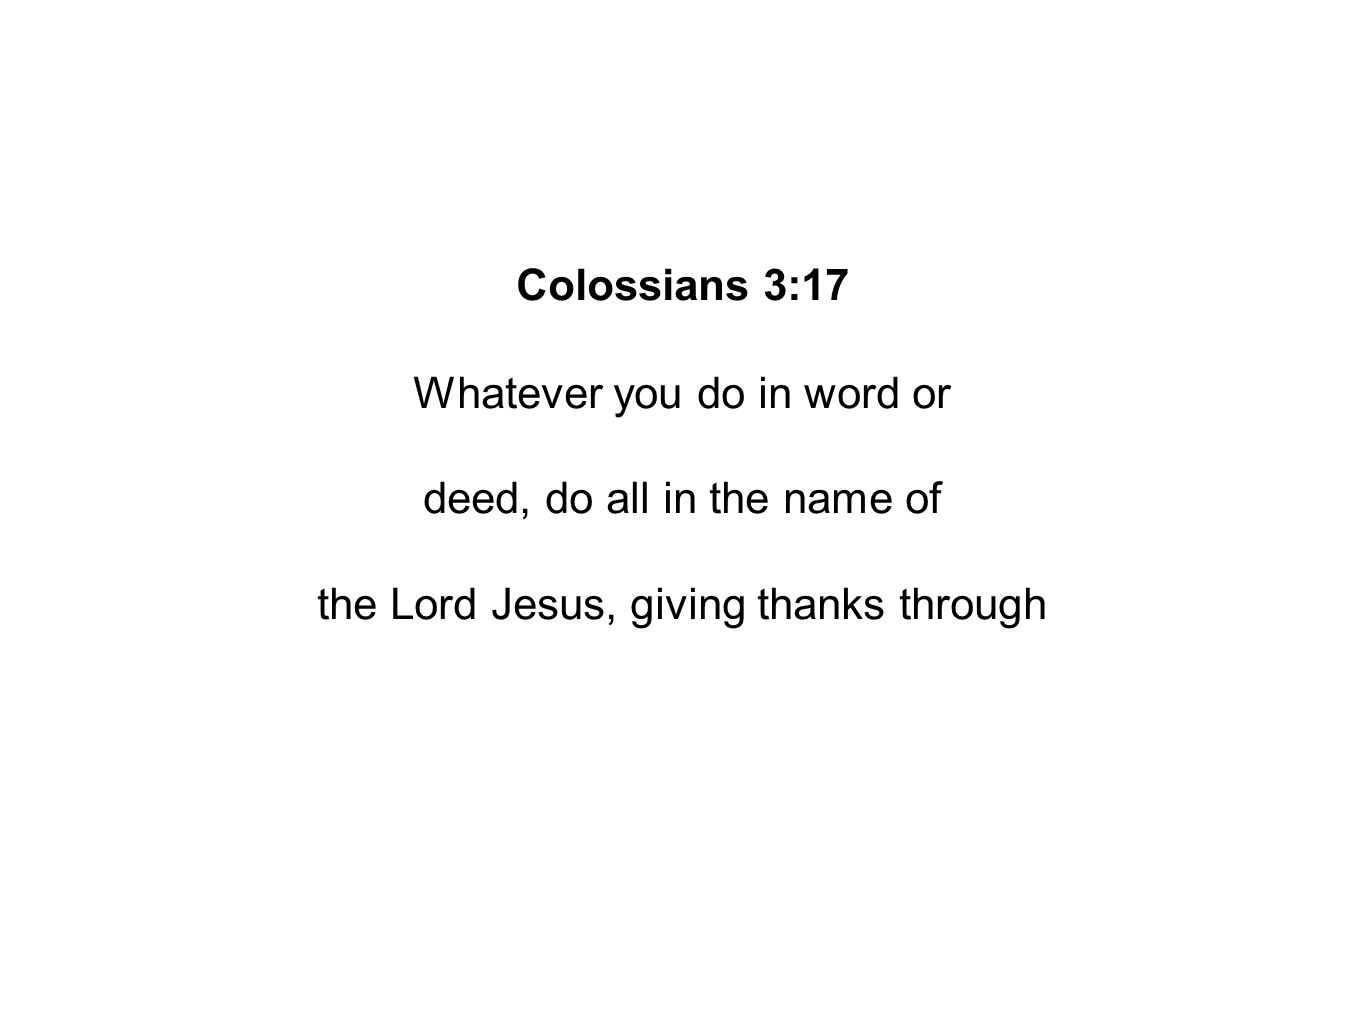 Colossians 3:17 Whatever you do in word or deed, do all in the name of the Lord Jesus, giving thanks through